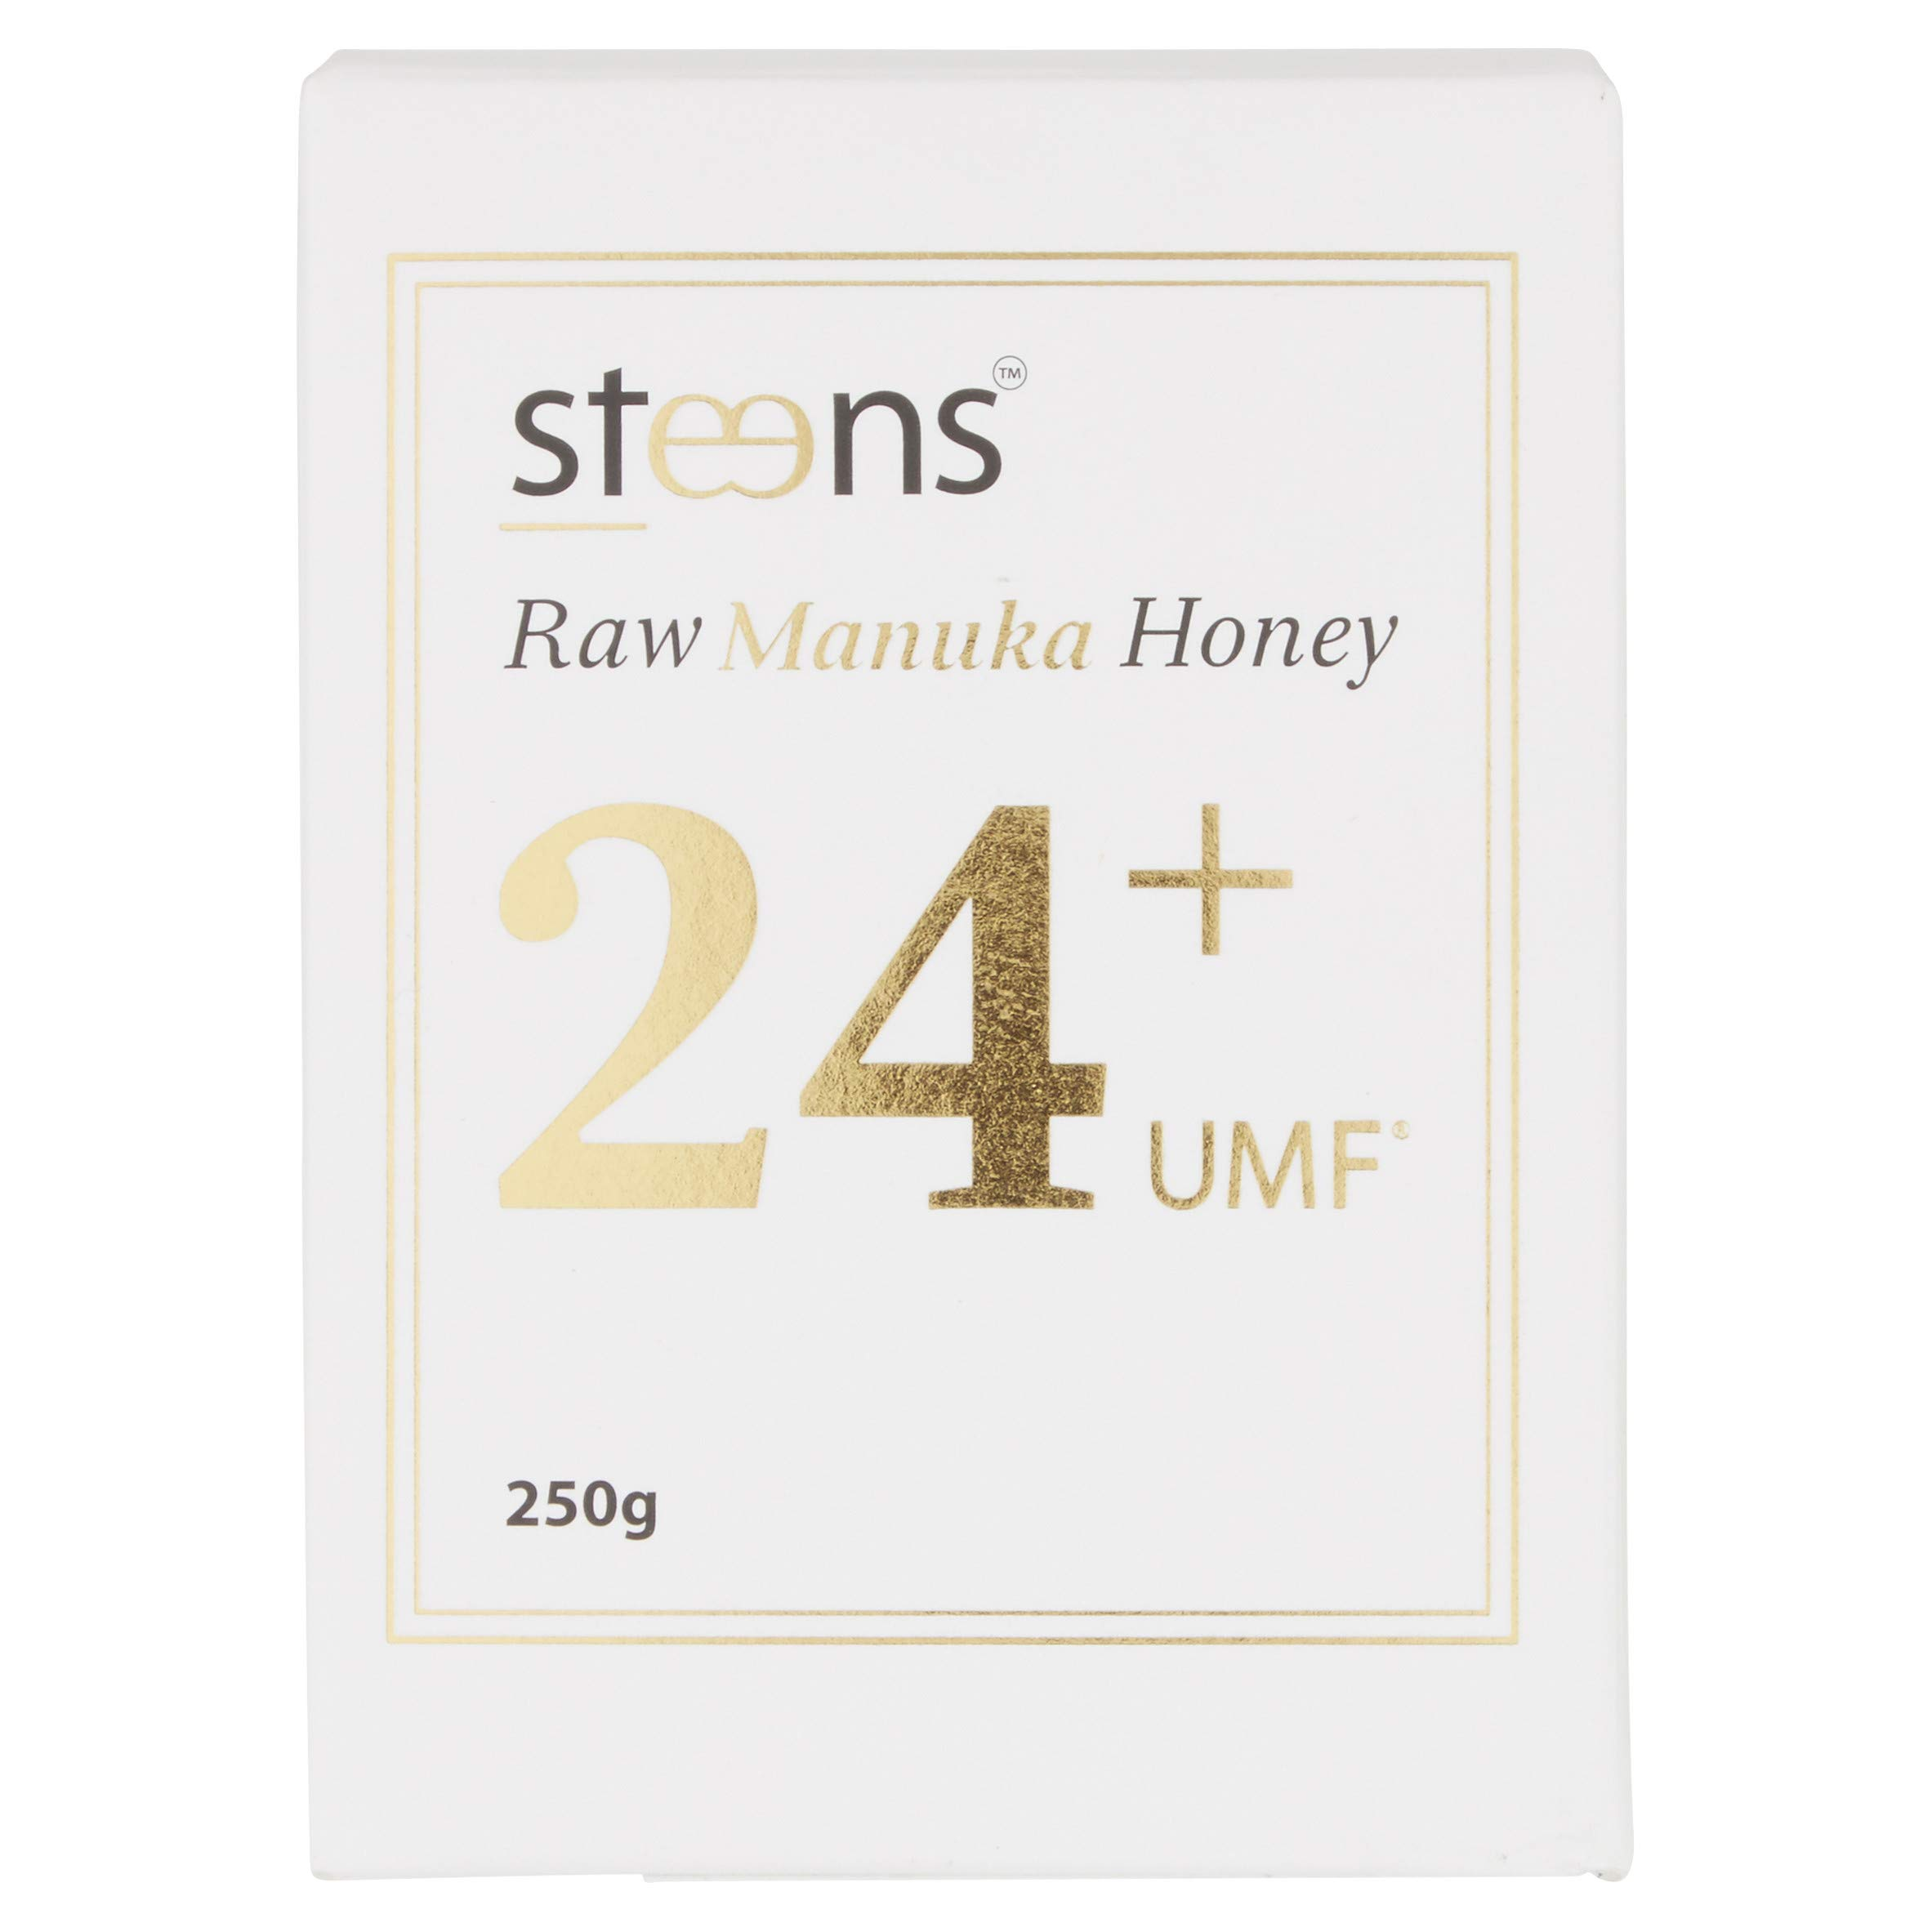 Steens UMF 24 Manuka Honey (MGO 1122) 8.8 Ounce jar with box | Raw Unpasteurized Honey From New Zealand | Traceability Code on Each Label by Steens (Image #6)